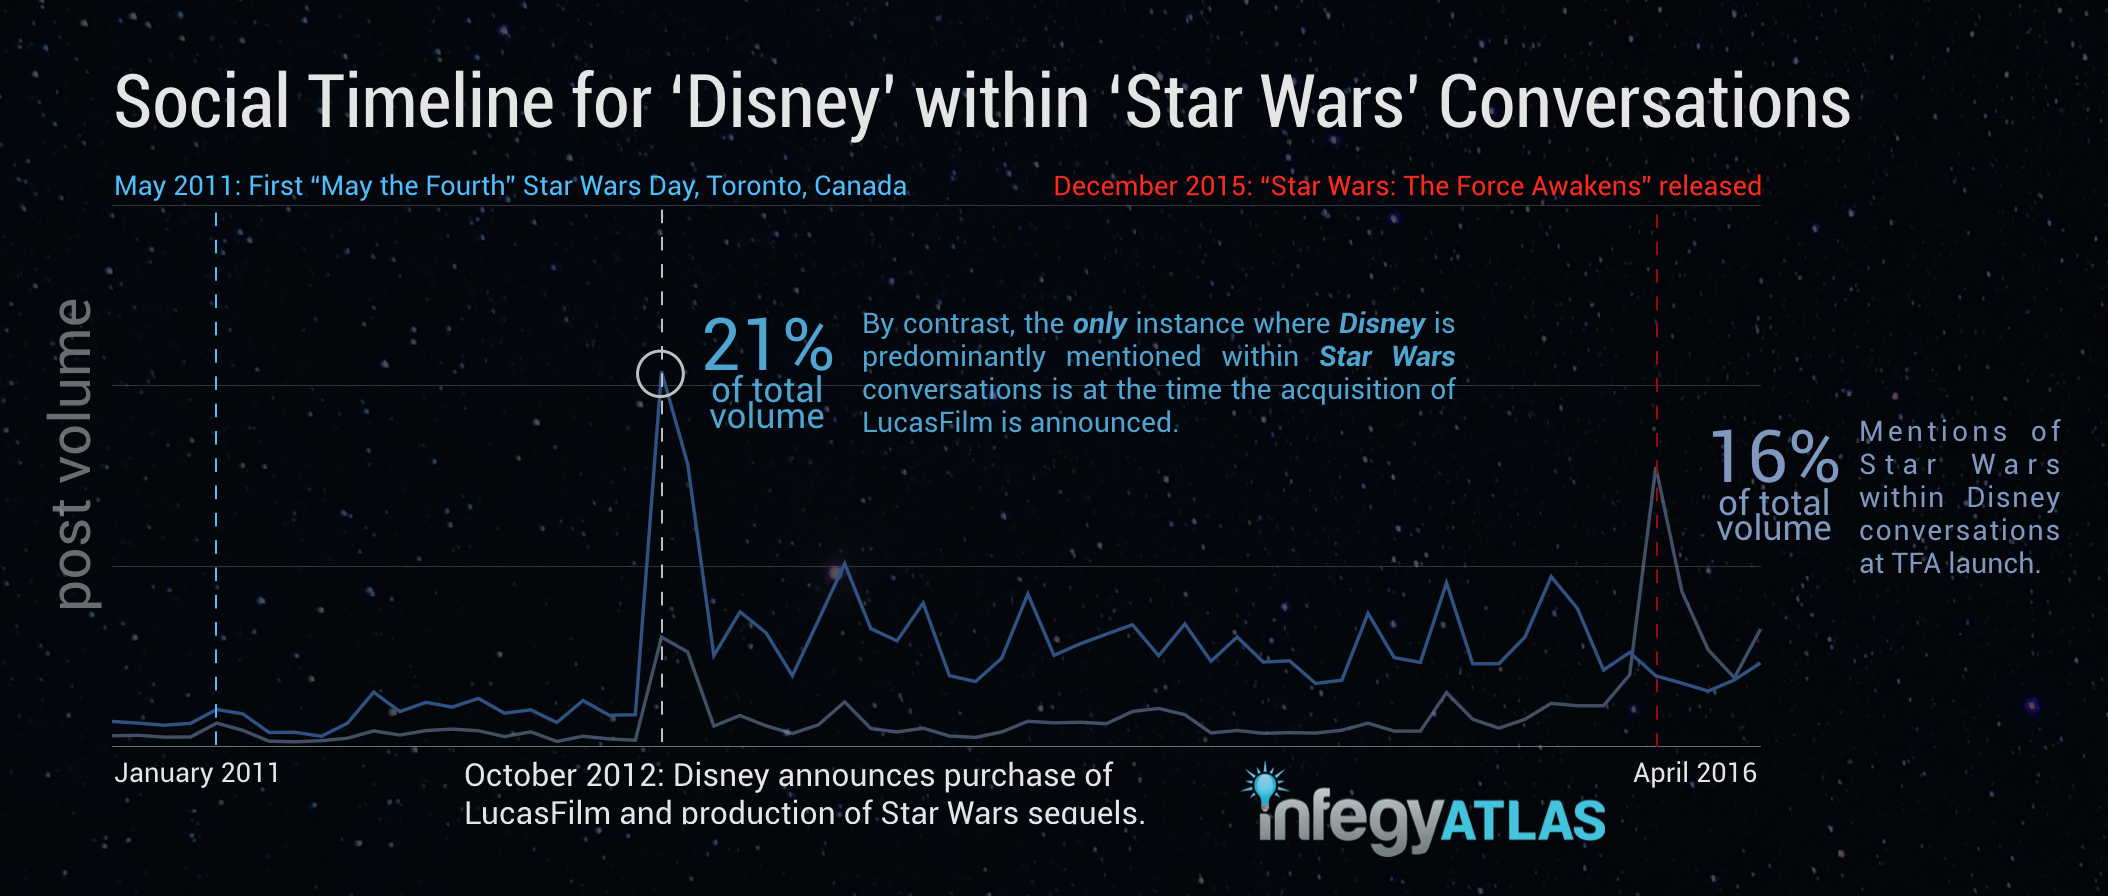 social-timeline-for-disney-in-star-wars-conversations.png